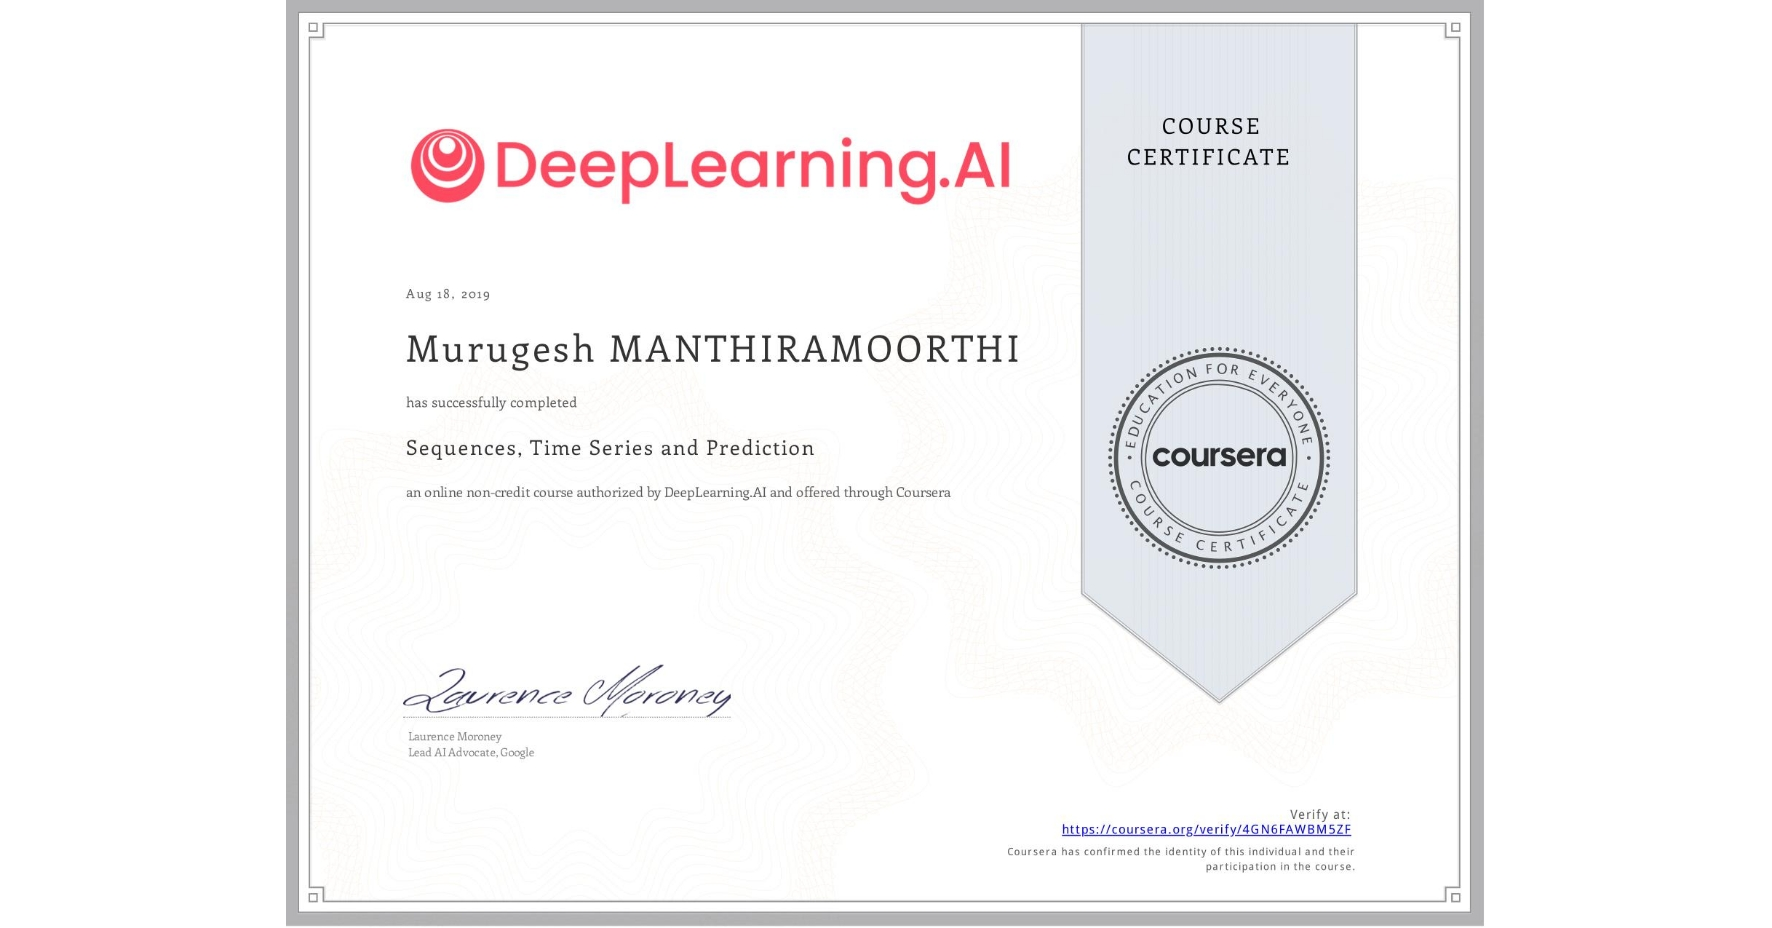 View certificate for Murugesh Manthiramoorthi, Sequences, Time Series and Prediction, an online non-credit course authorized by DeepLearning.AI and offered through Coursera